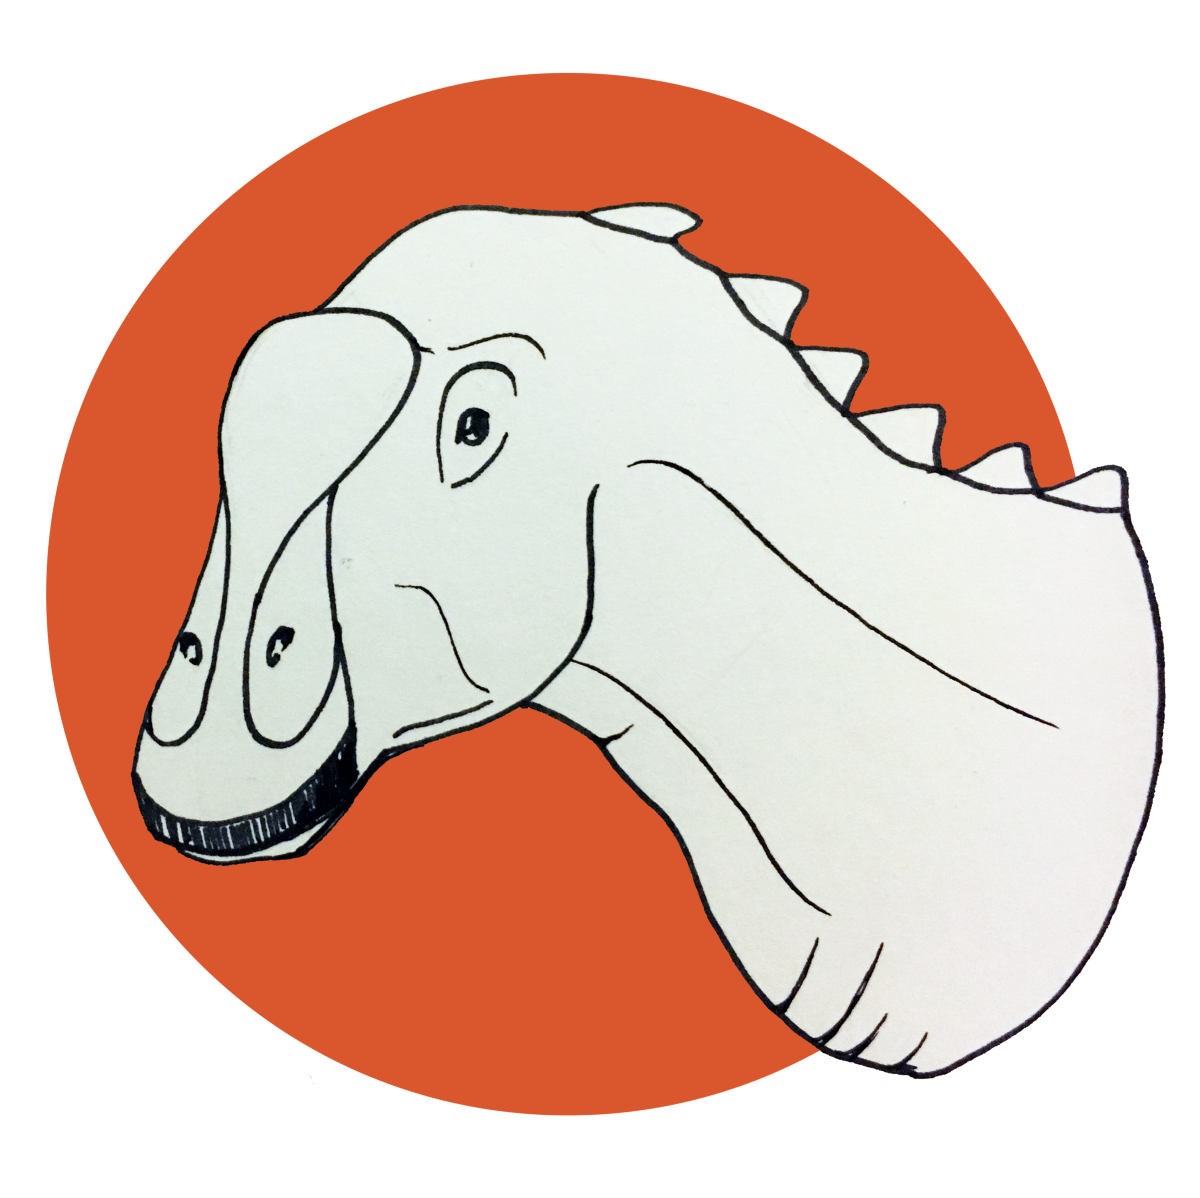 Fossil clipart preserved. Meet the dinosaurs of